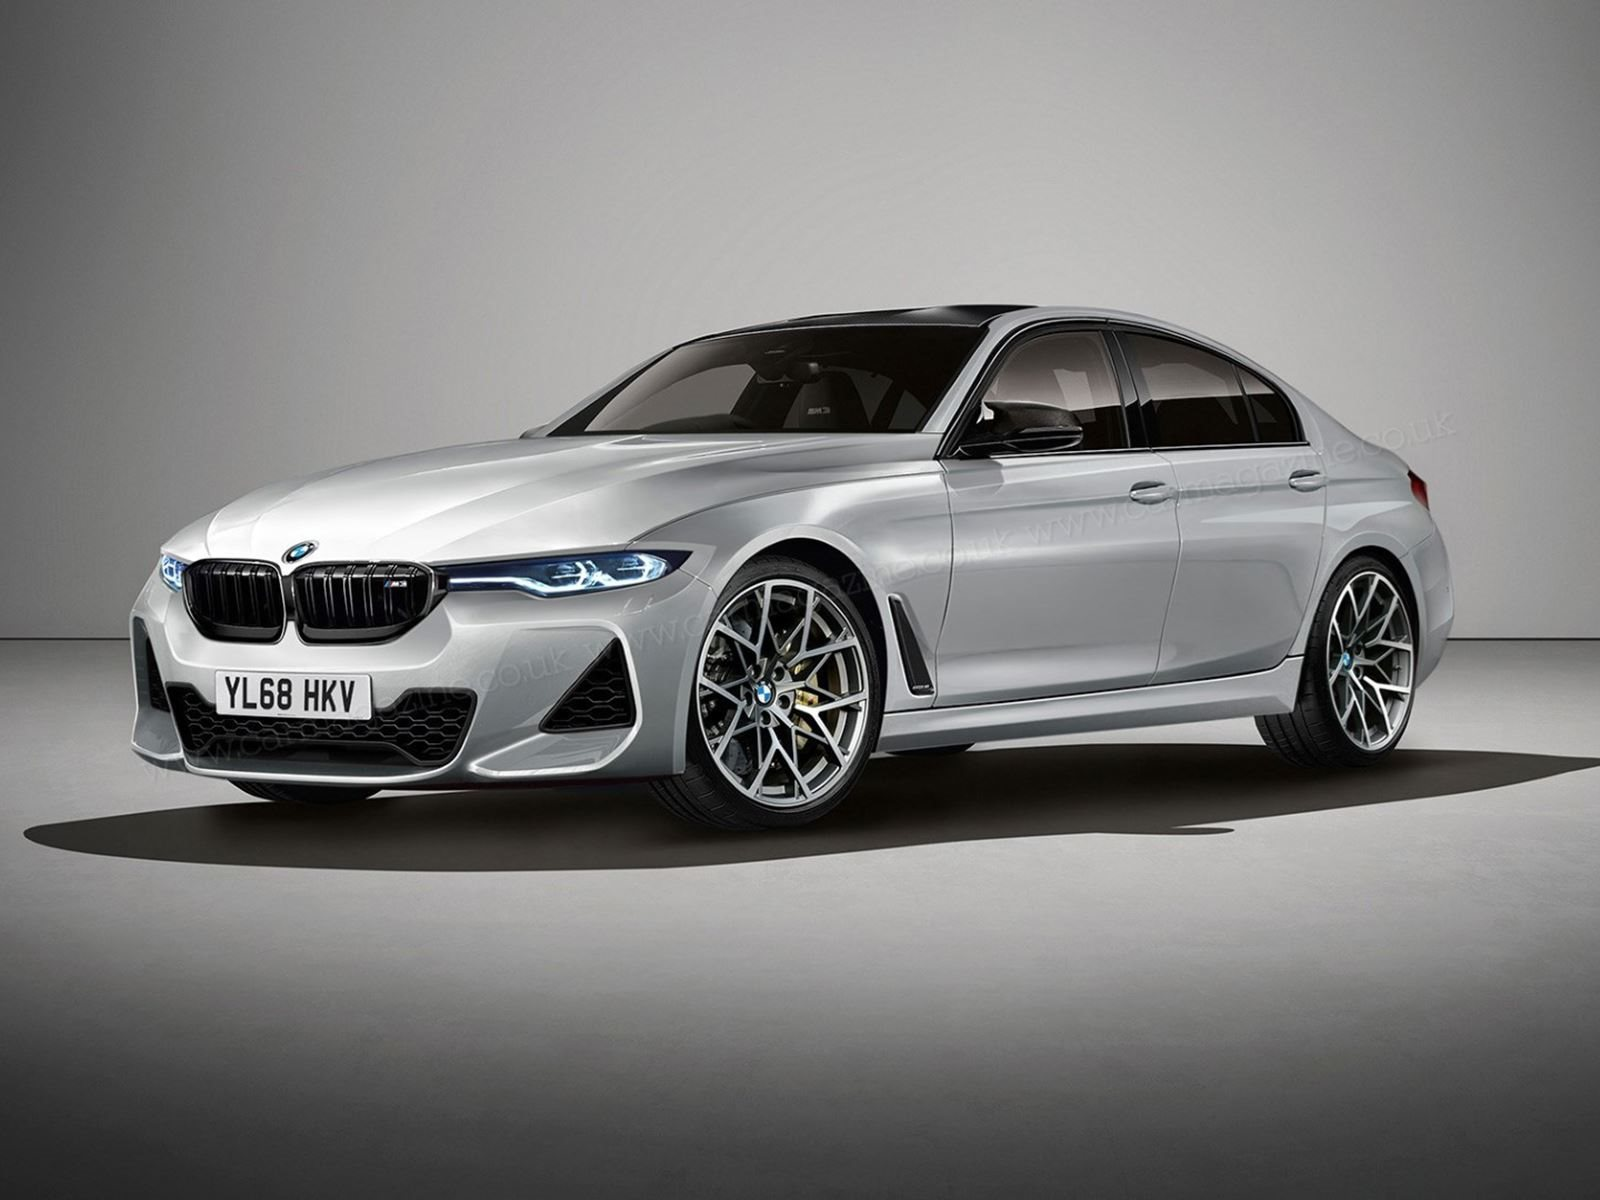 5 Features We Want On The Next Generation Bmw M3 And M4 Carbuzz